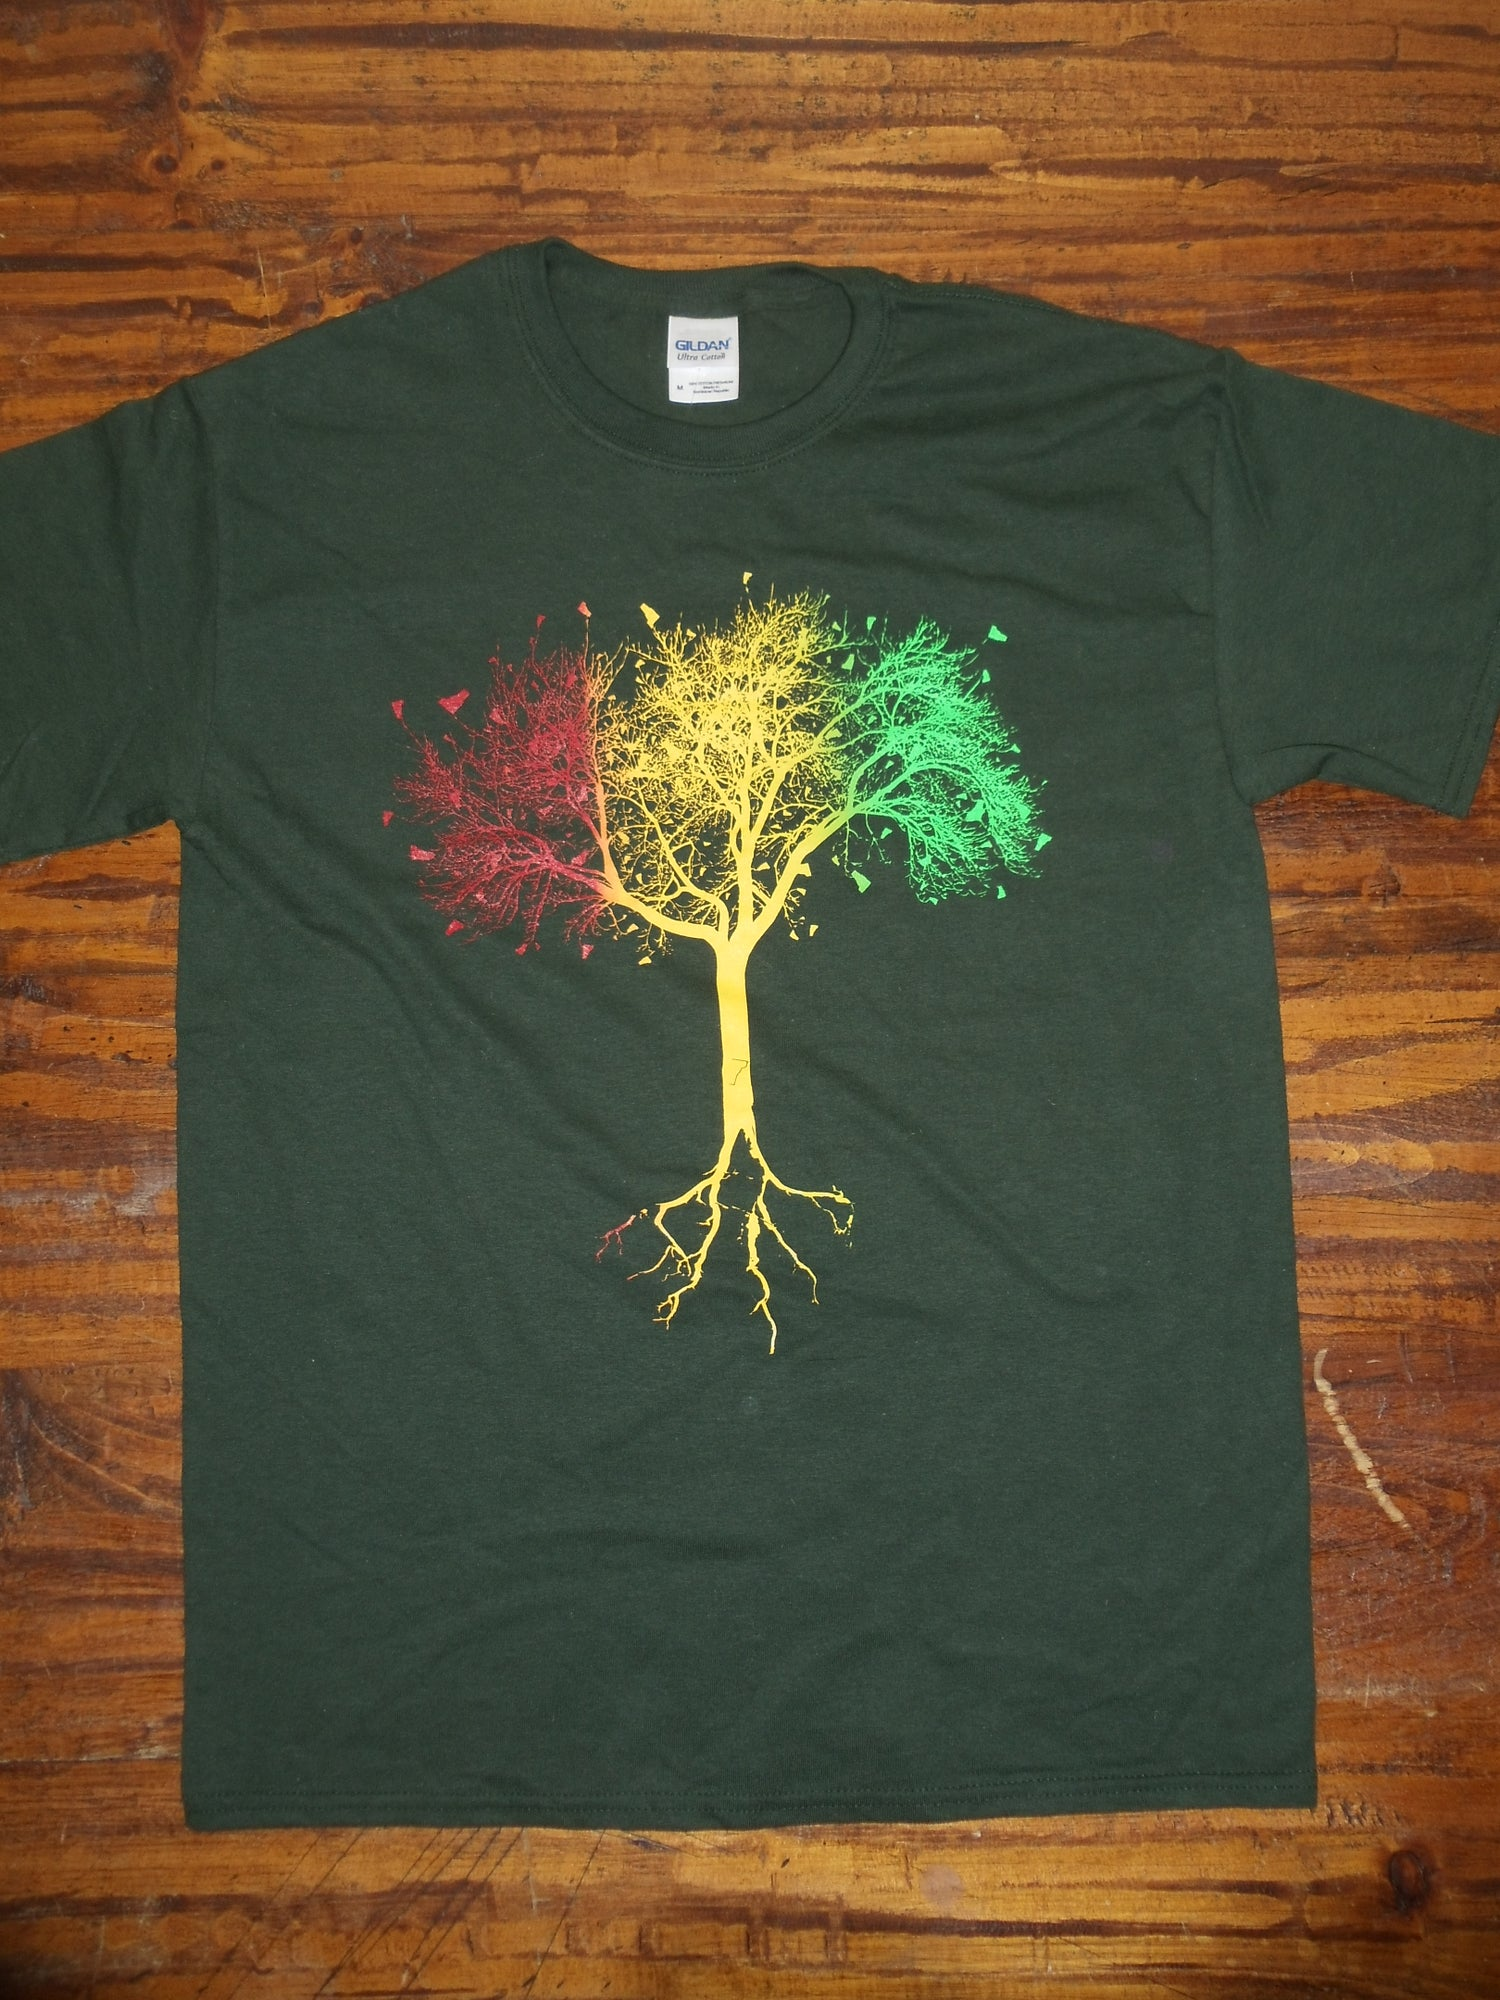 Image of 802 Vtree Tshirt - Vermont Tree Shirt - Vermont Clothing - 802 clothing